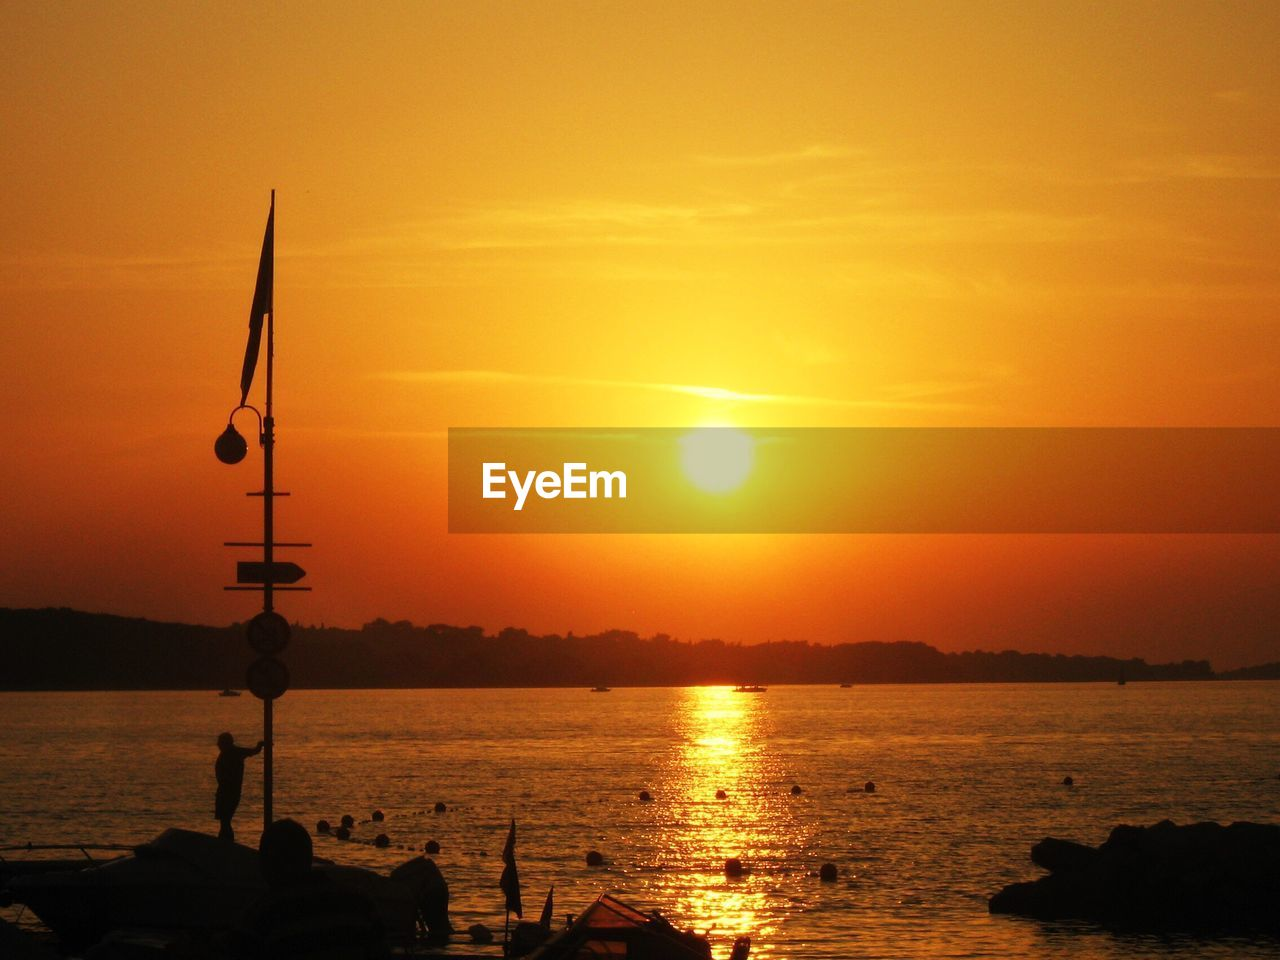 sunset, water, orange color, sun, beauty in nature, sea, scenics, nature, silhouette, sky, tranquility, sunlight, reflection, no people, outdoors, nautical vessel, scenery